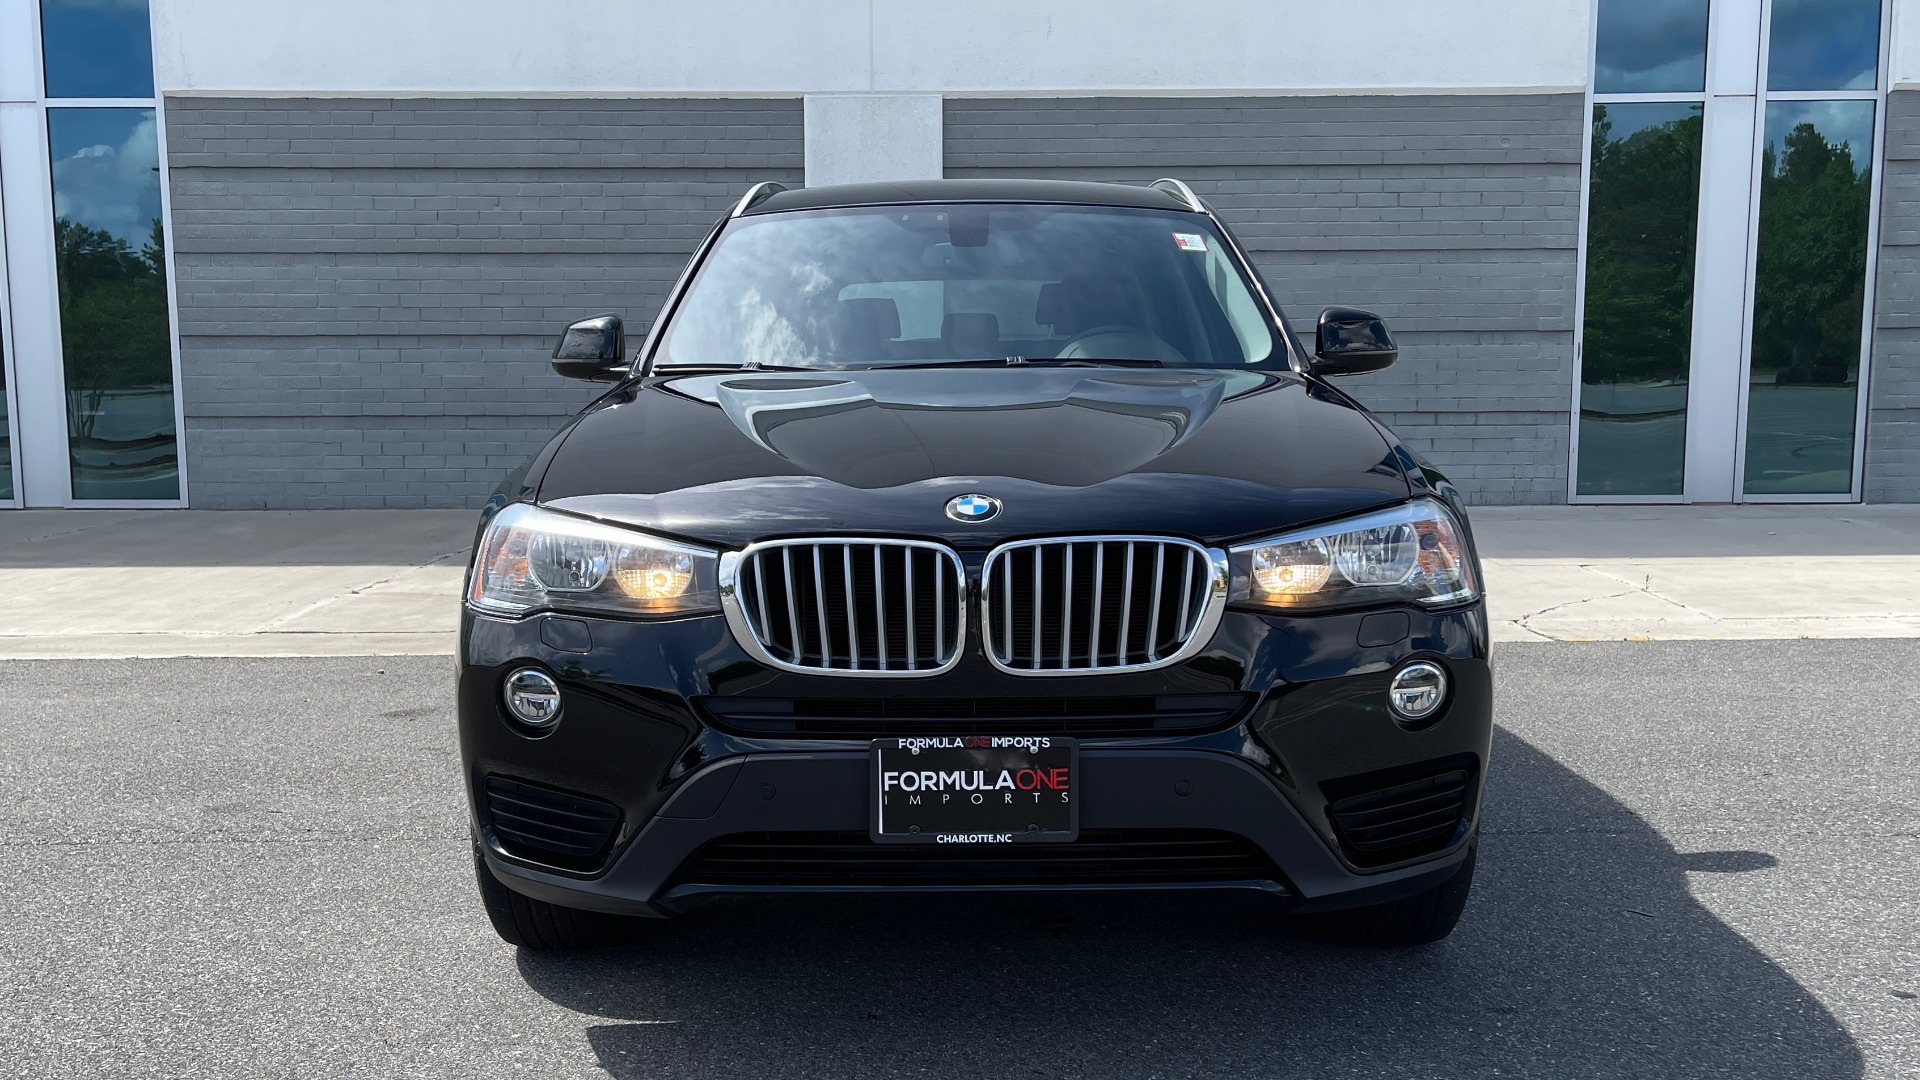 Used 2017 BMW X3 SDRIVE28I / DRVR ASST PKG / HTD STS / REARVIEW / 18IN WHEELS for sale $24,995 at Formula Imports in Charlotte NC 28227 12